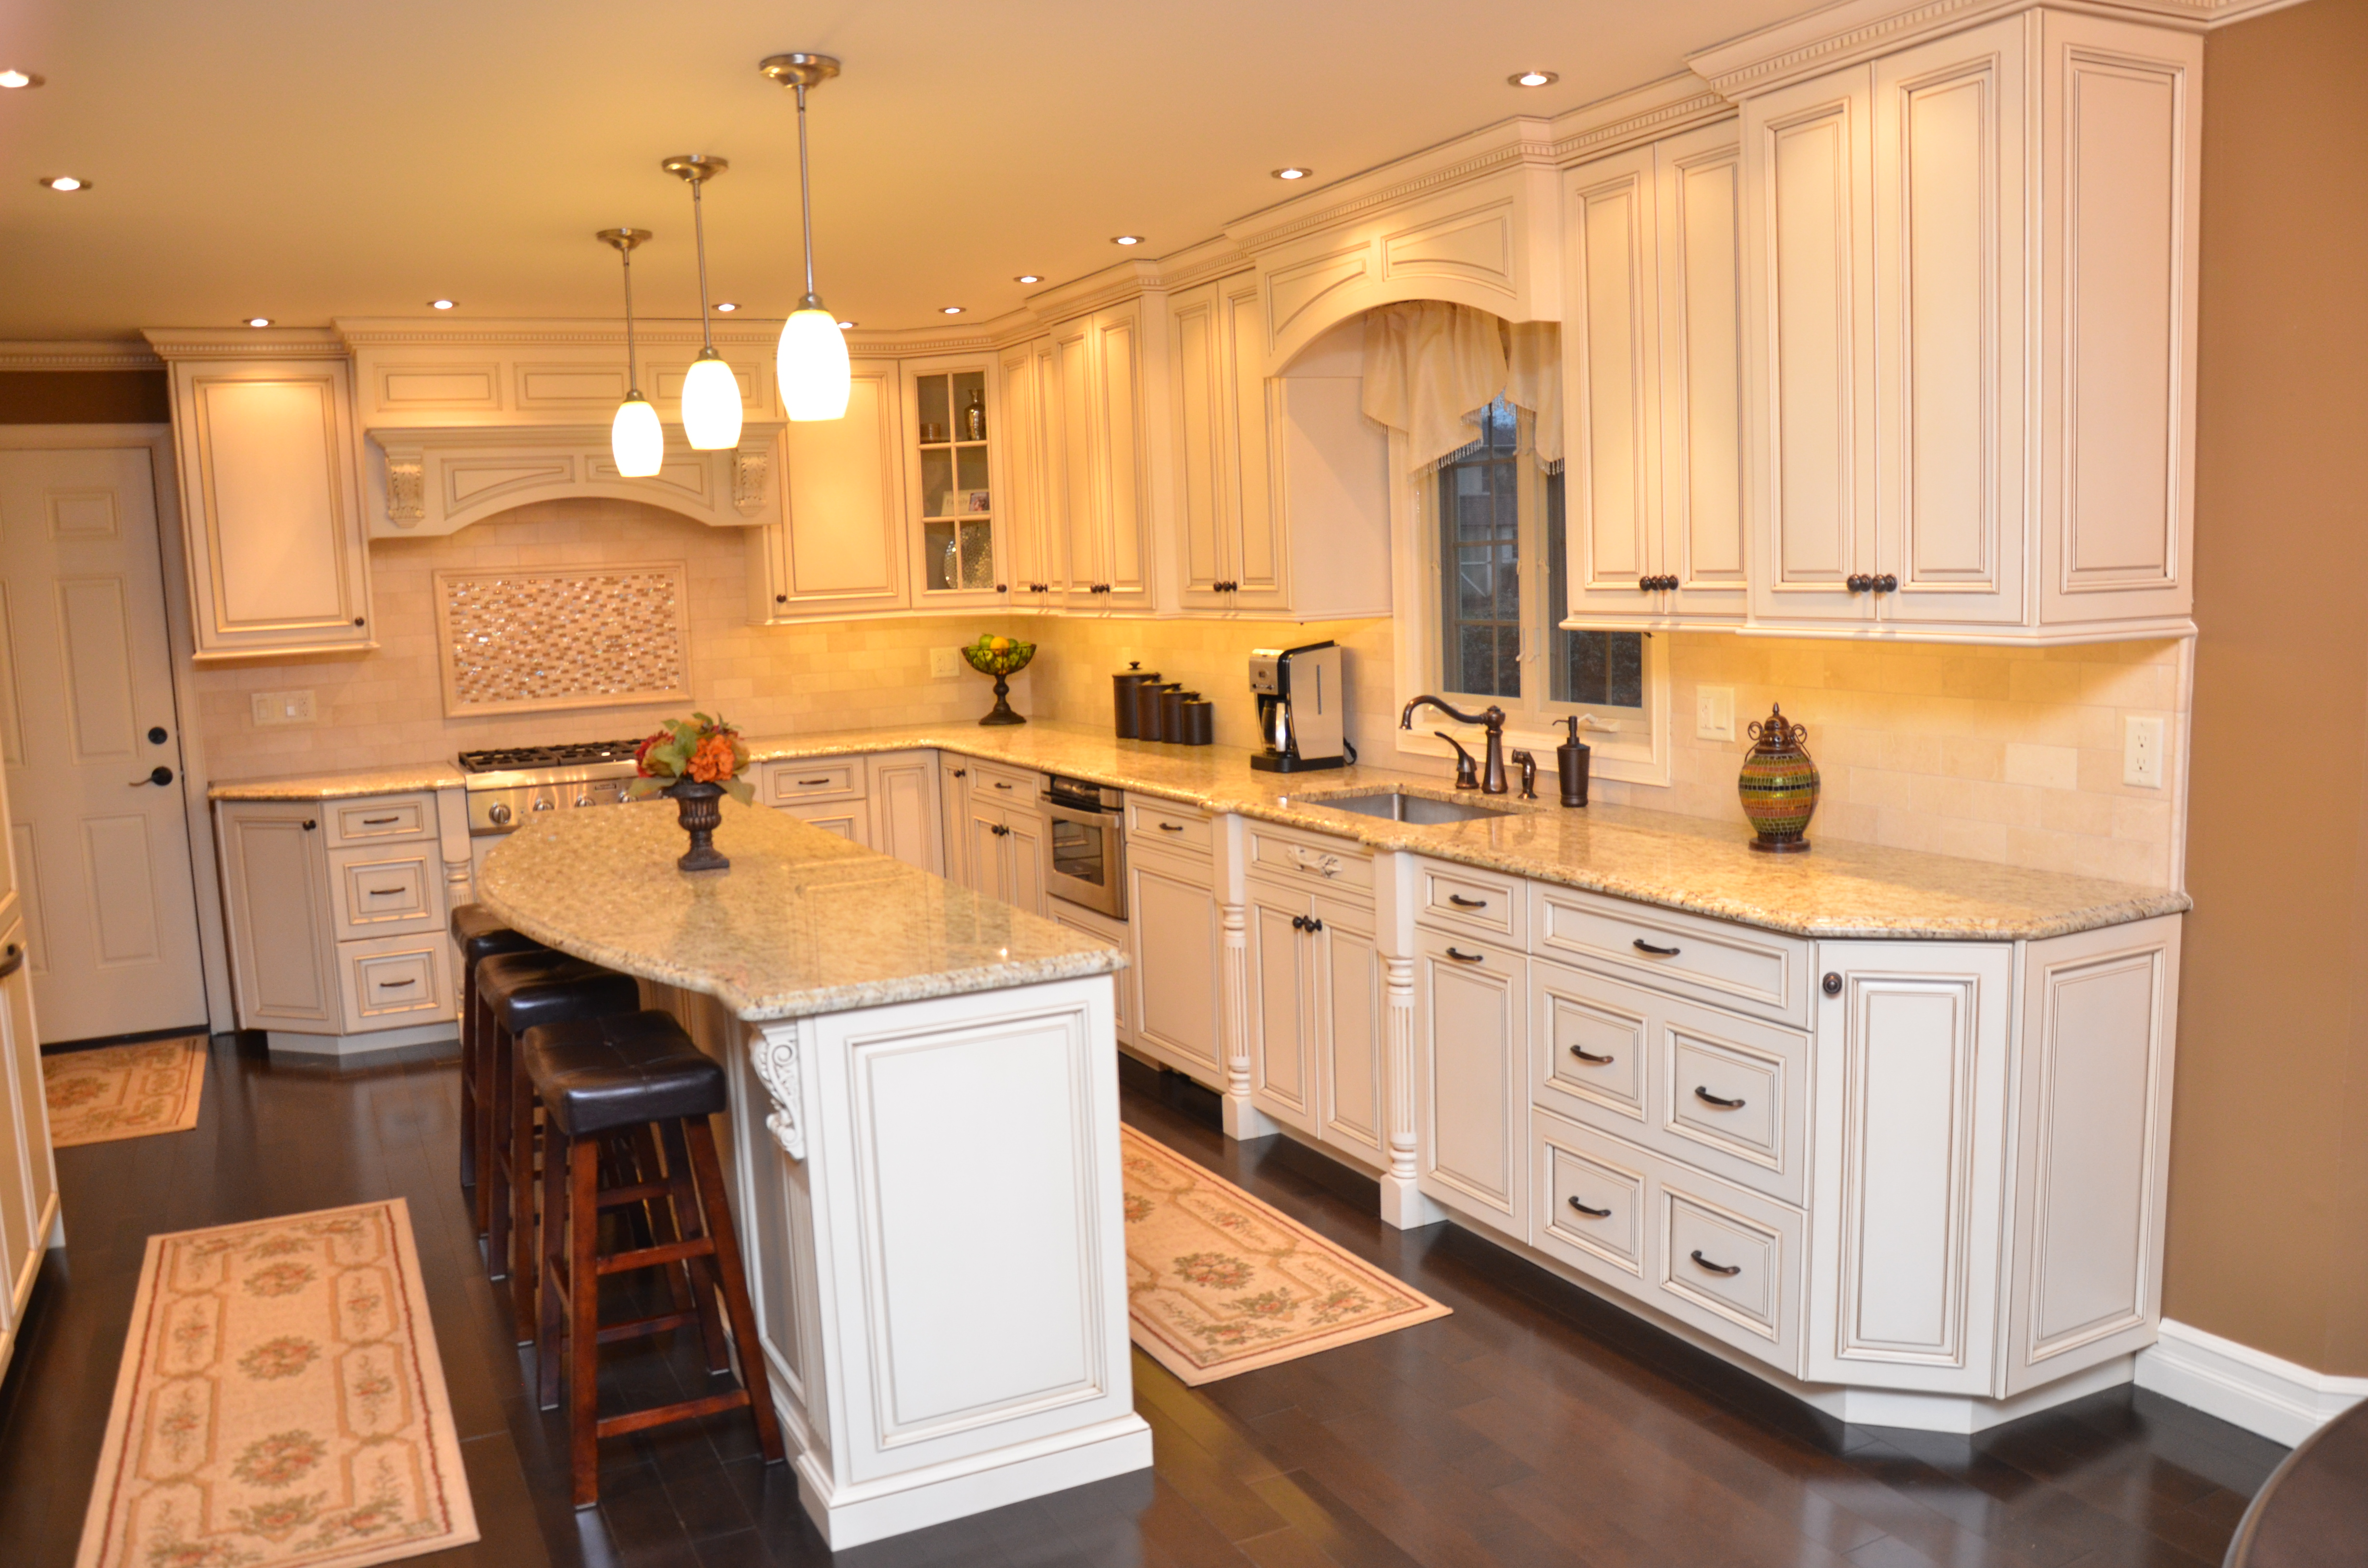 kitchen island with corbels pictures to pin on pinterest island corbel houzz